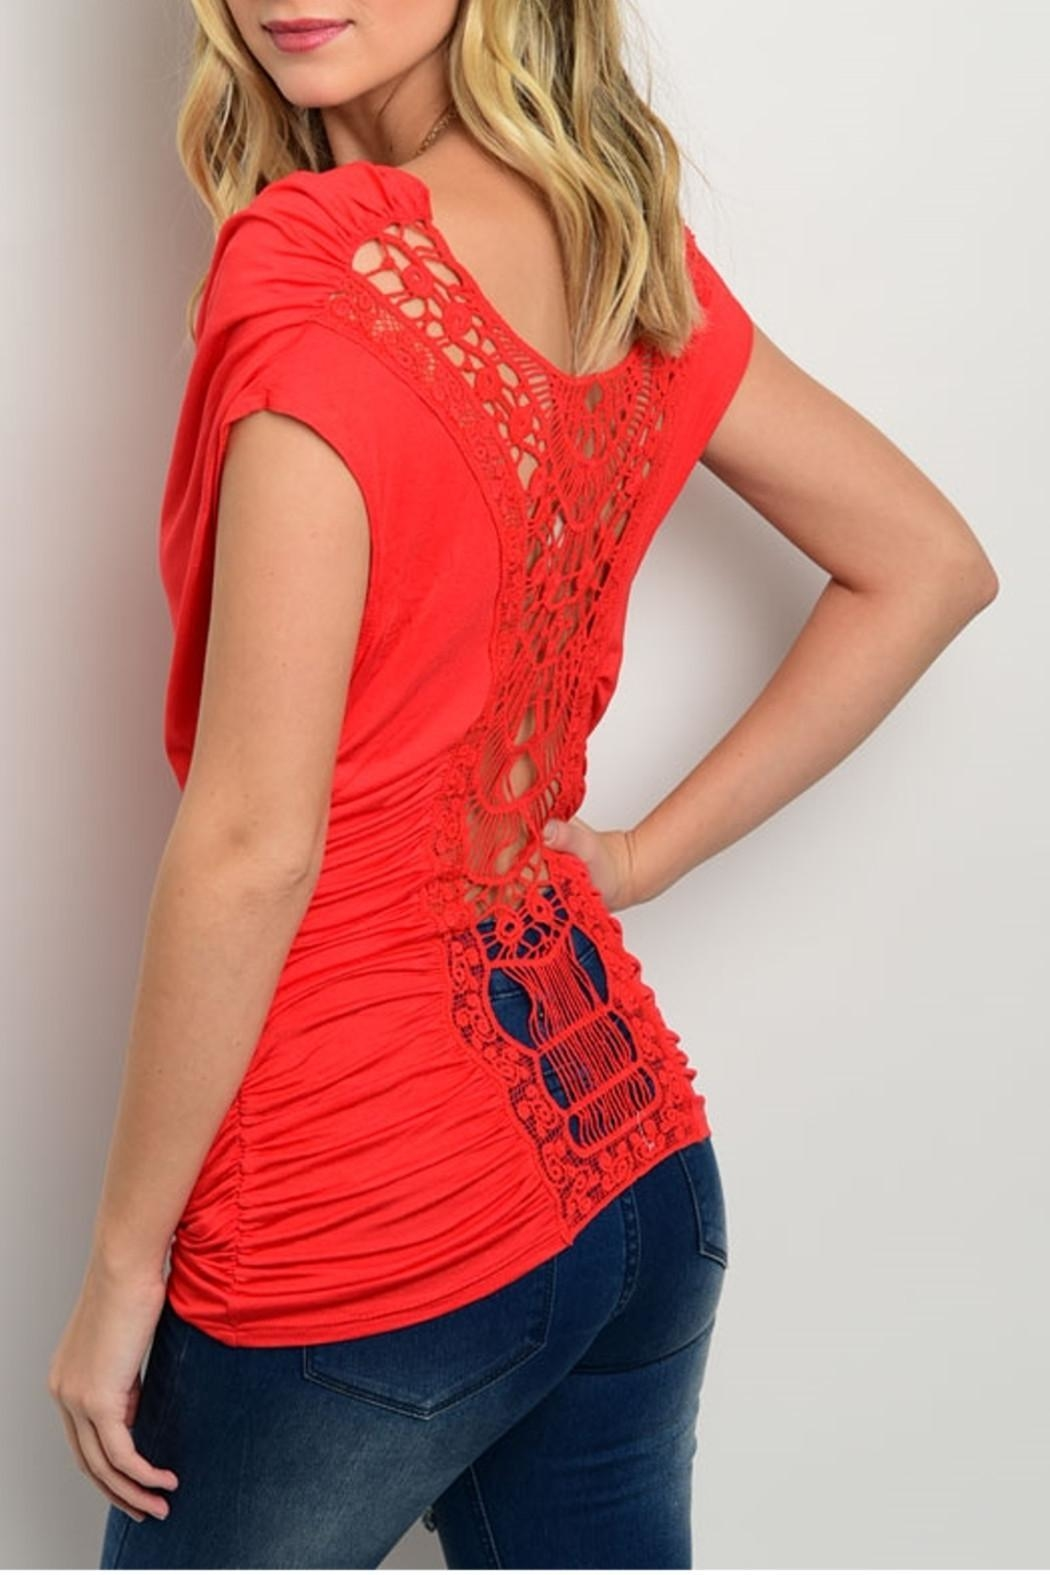 CY USA Draped Crochet Top - Front Full Image